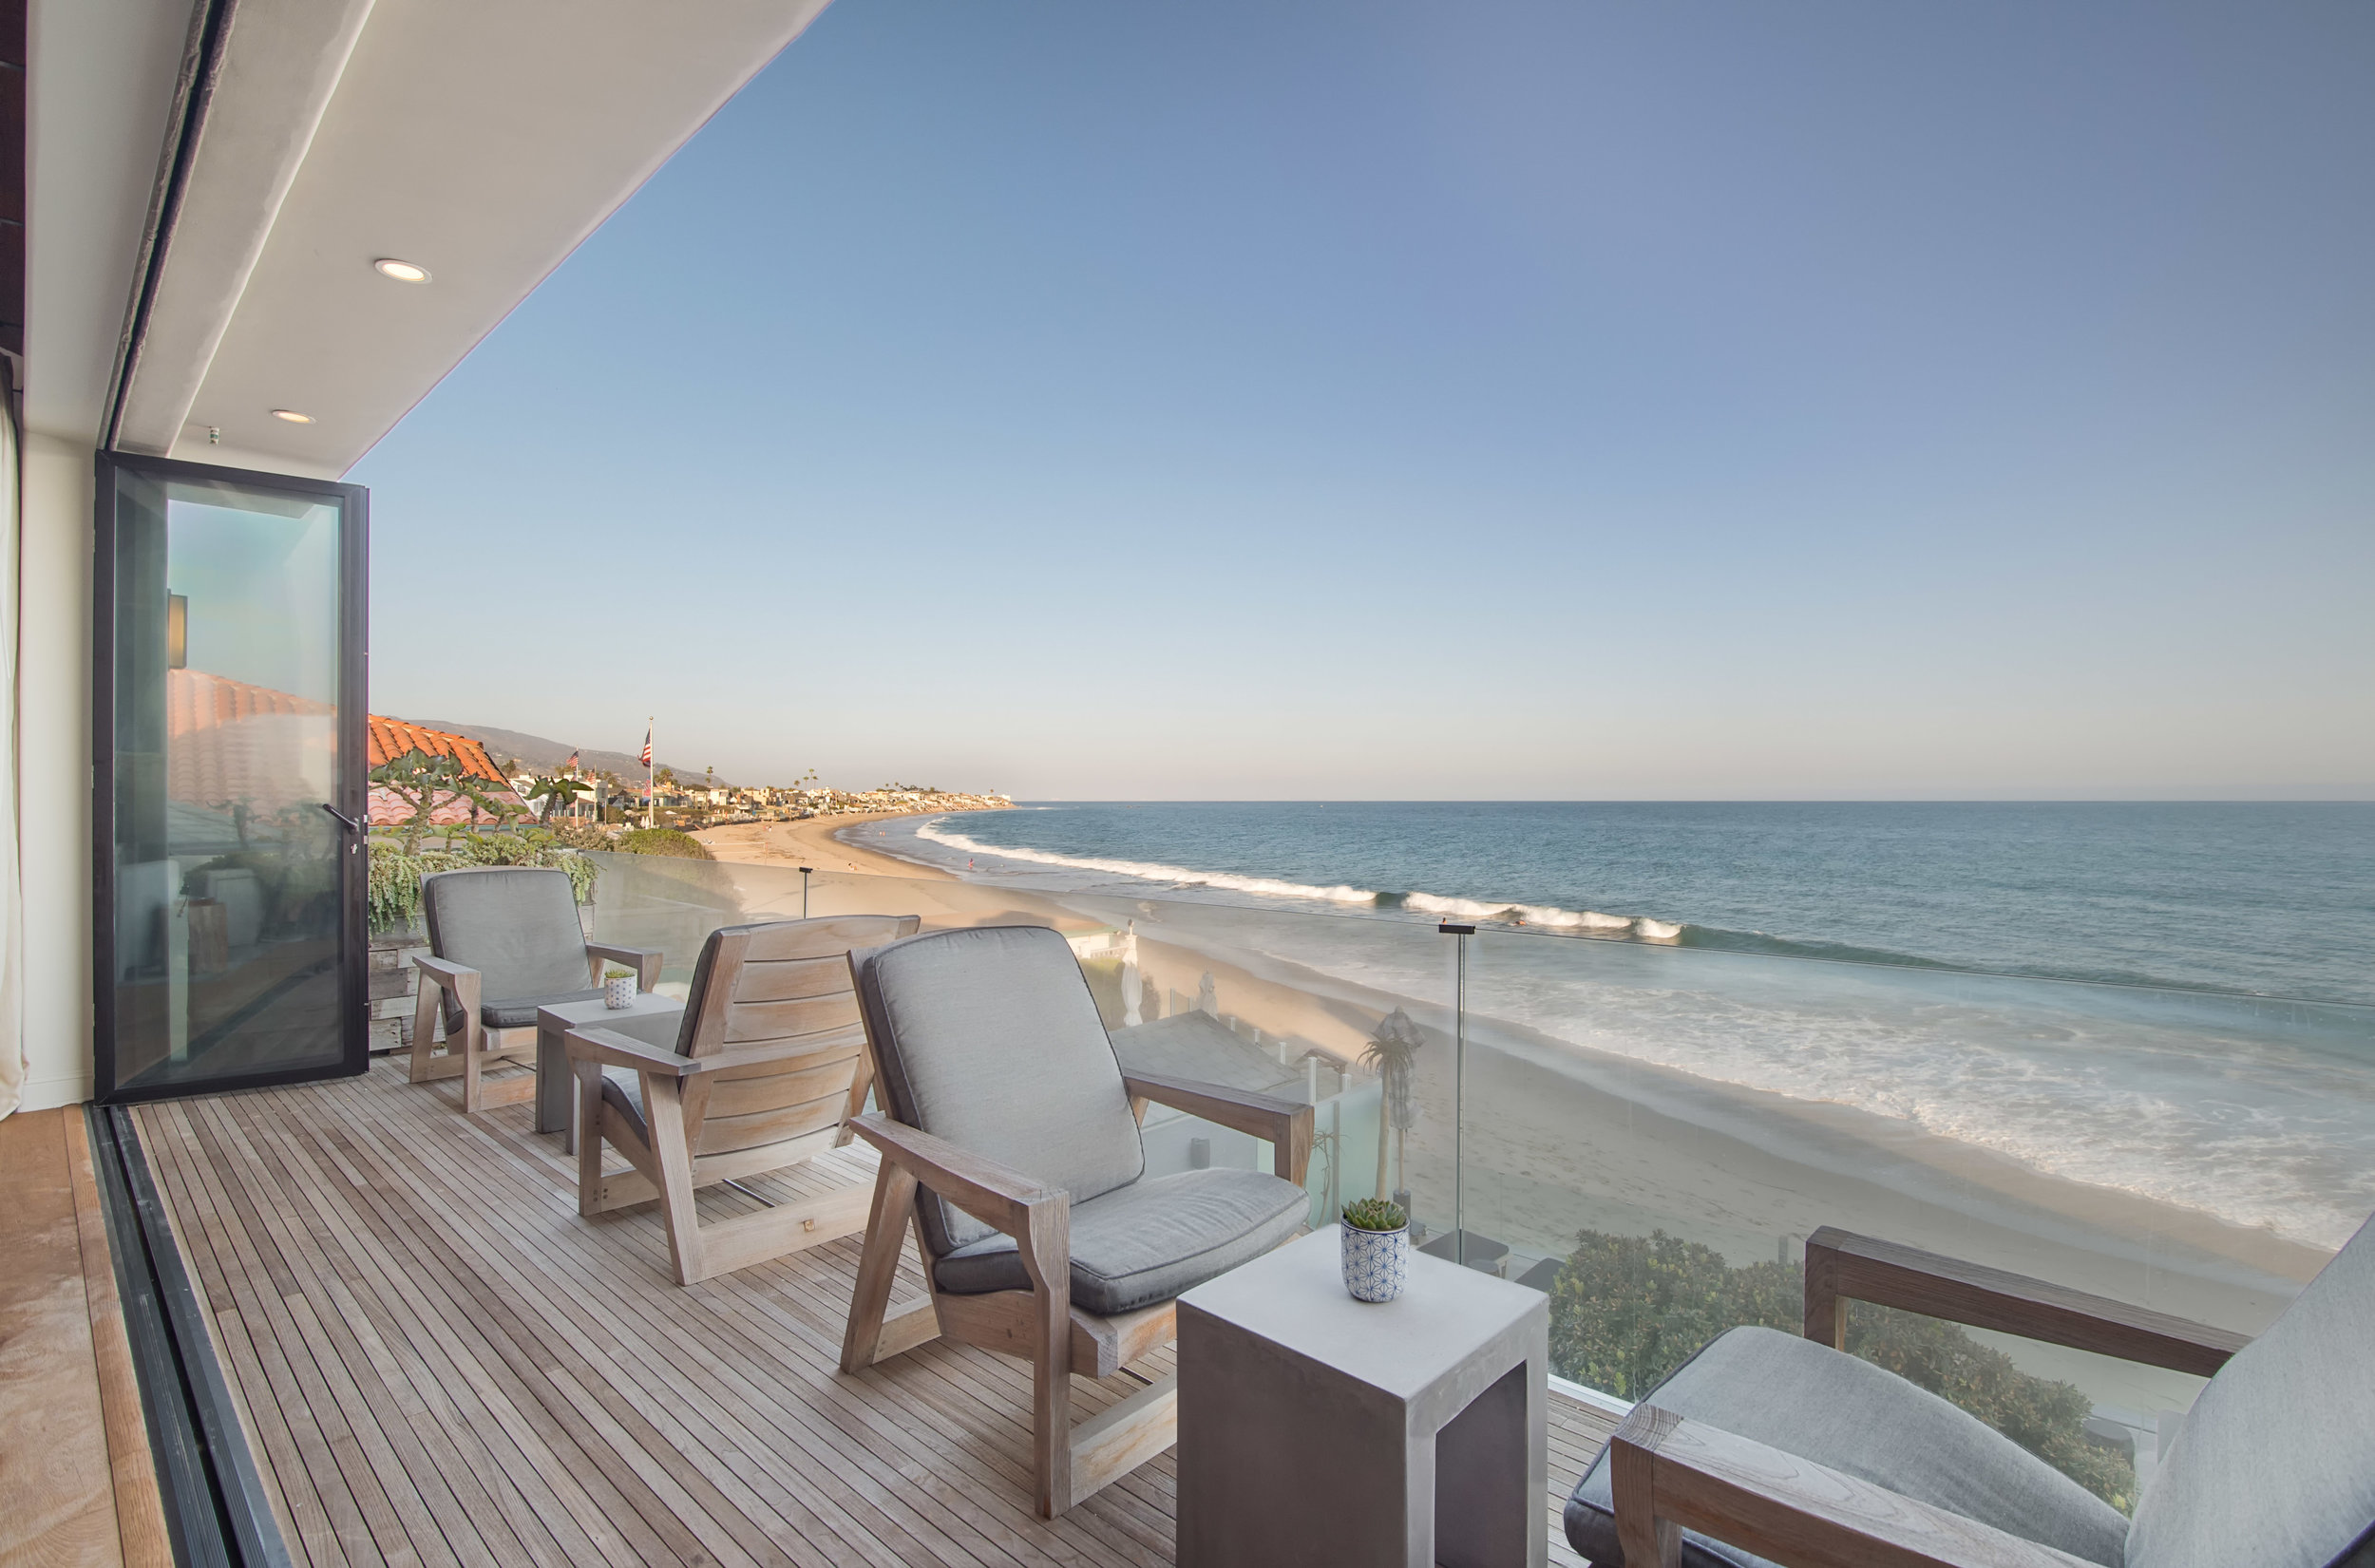 005 master 23930 Malibu Road For Sale Lease The Malibu Life Team Luxury Real Estate.jpg